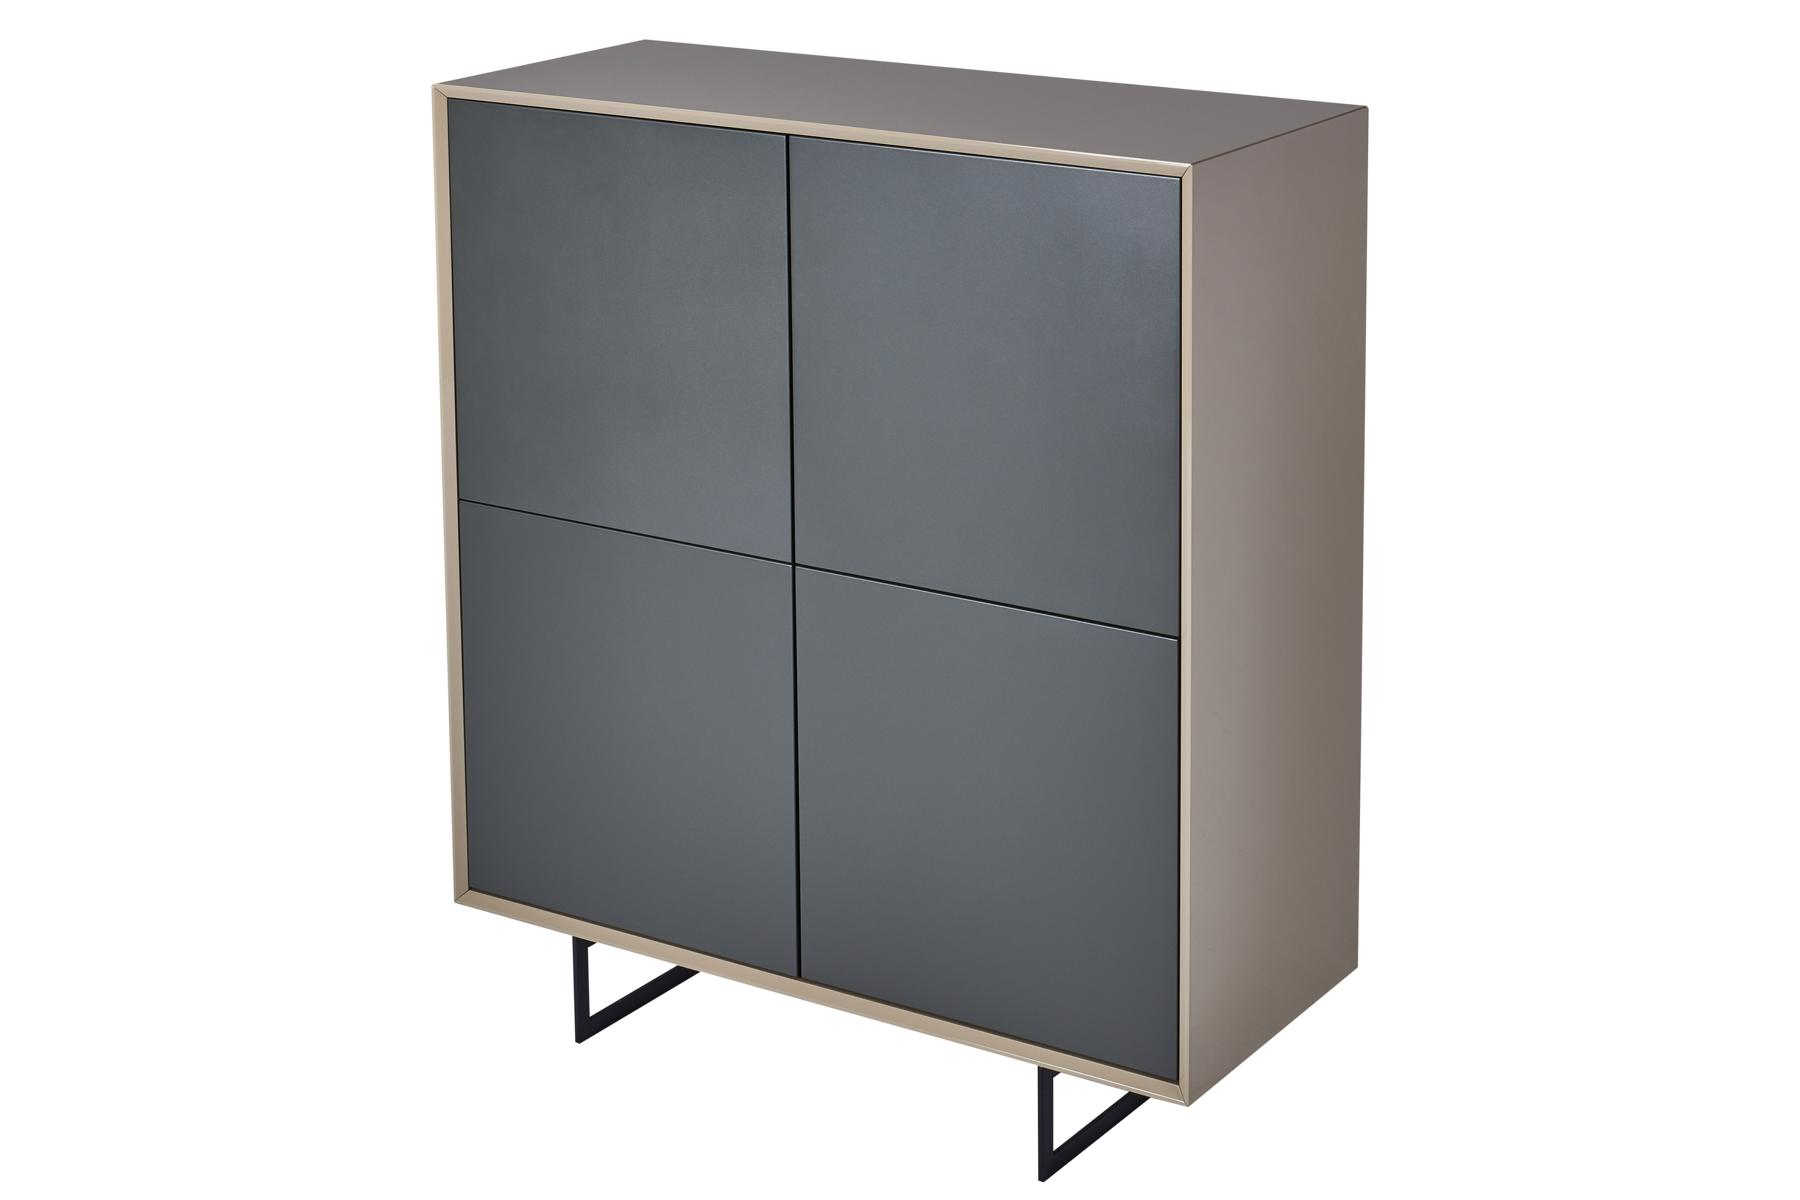 highboard titran beige grau anthrazit hochglanz sand matt. Black Bedroom Furniture Sets. Home Design Ideas